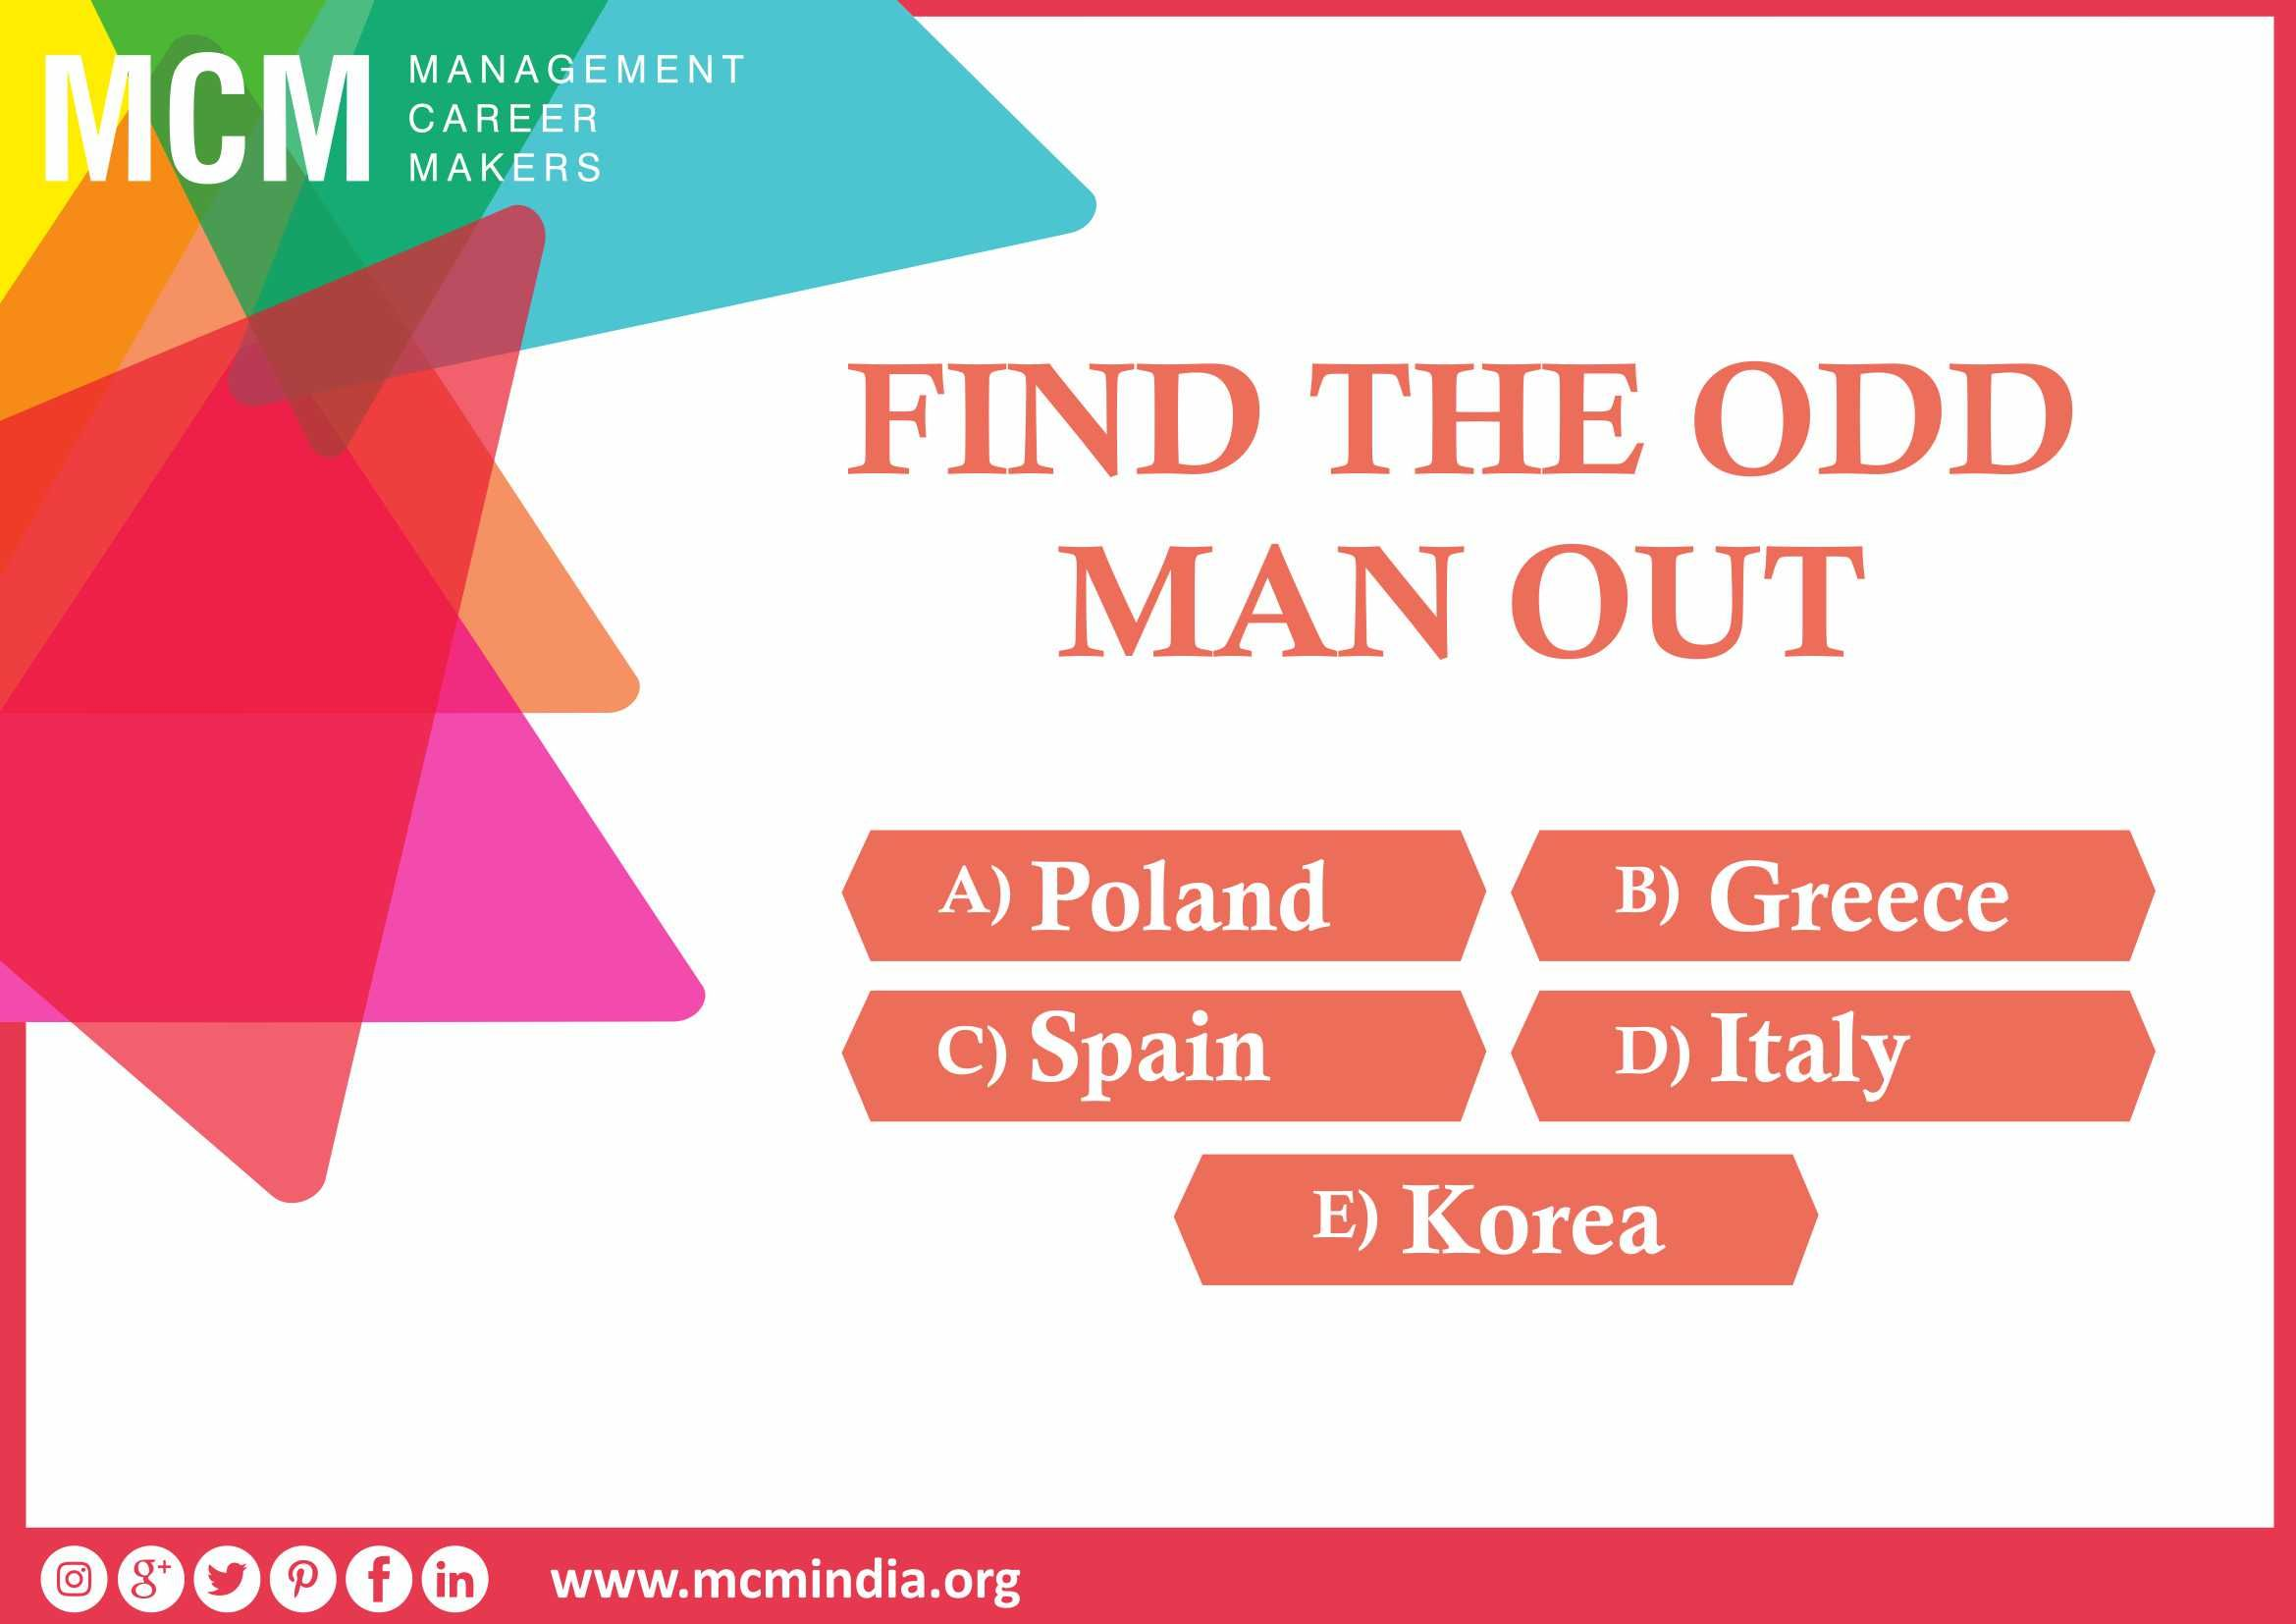 Find the odd man out!!! Answer this simple question and